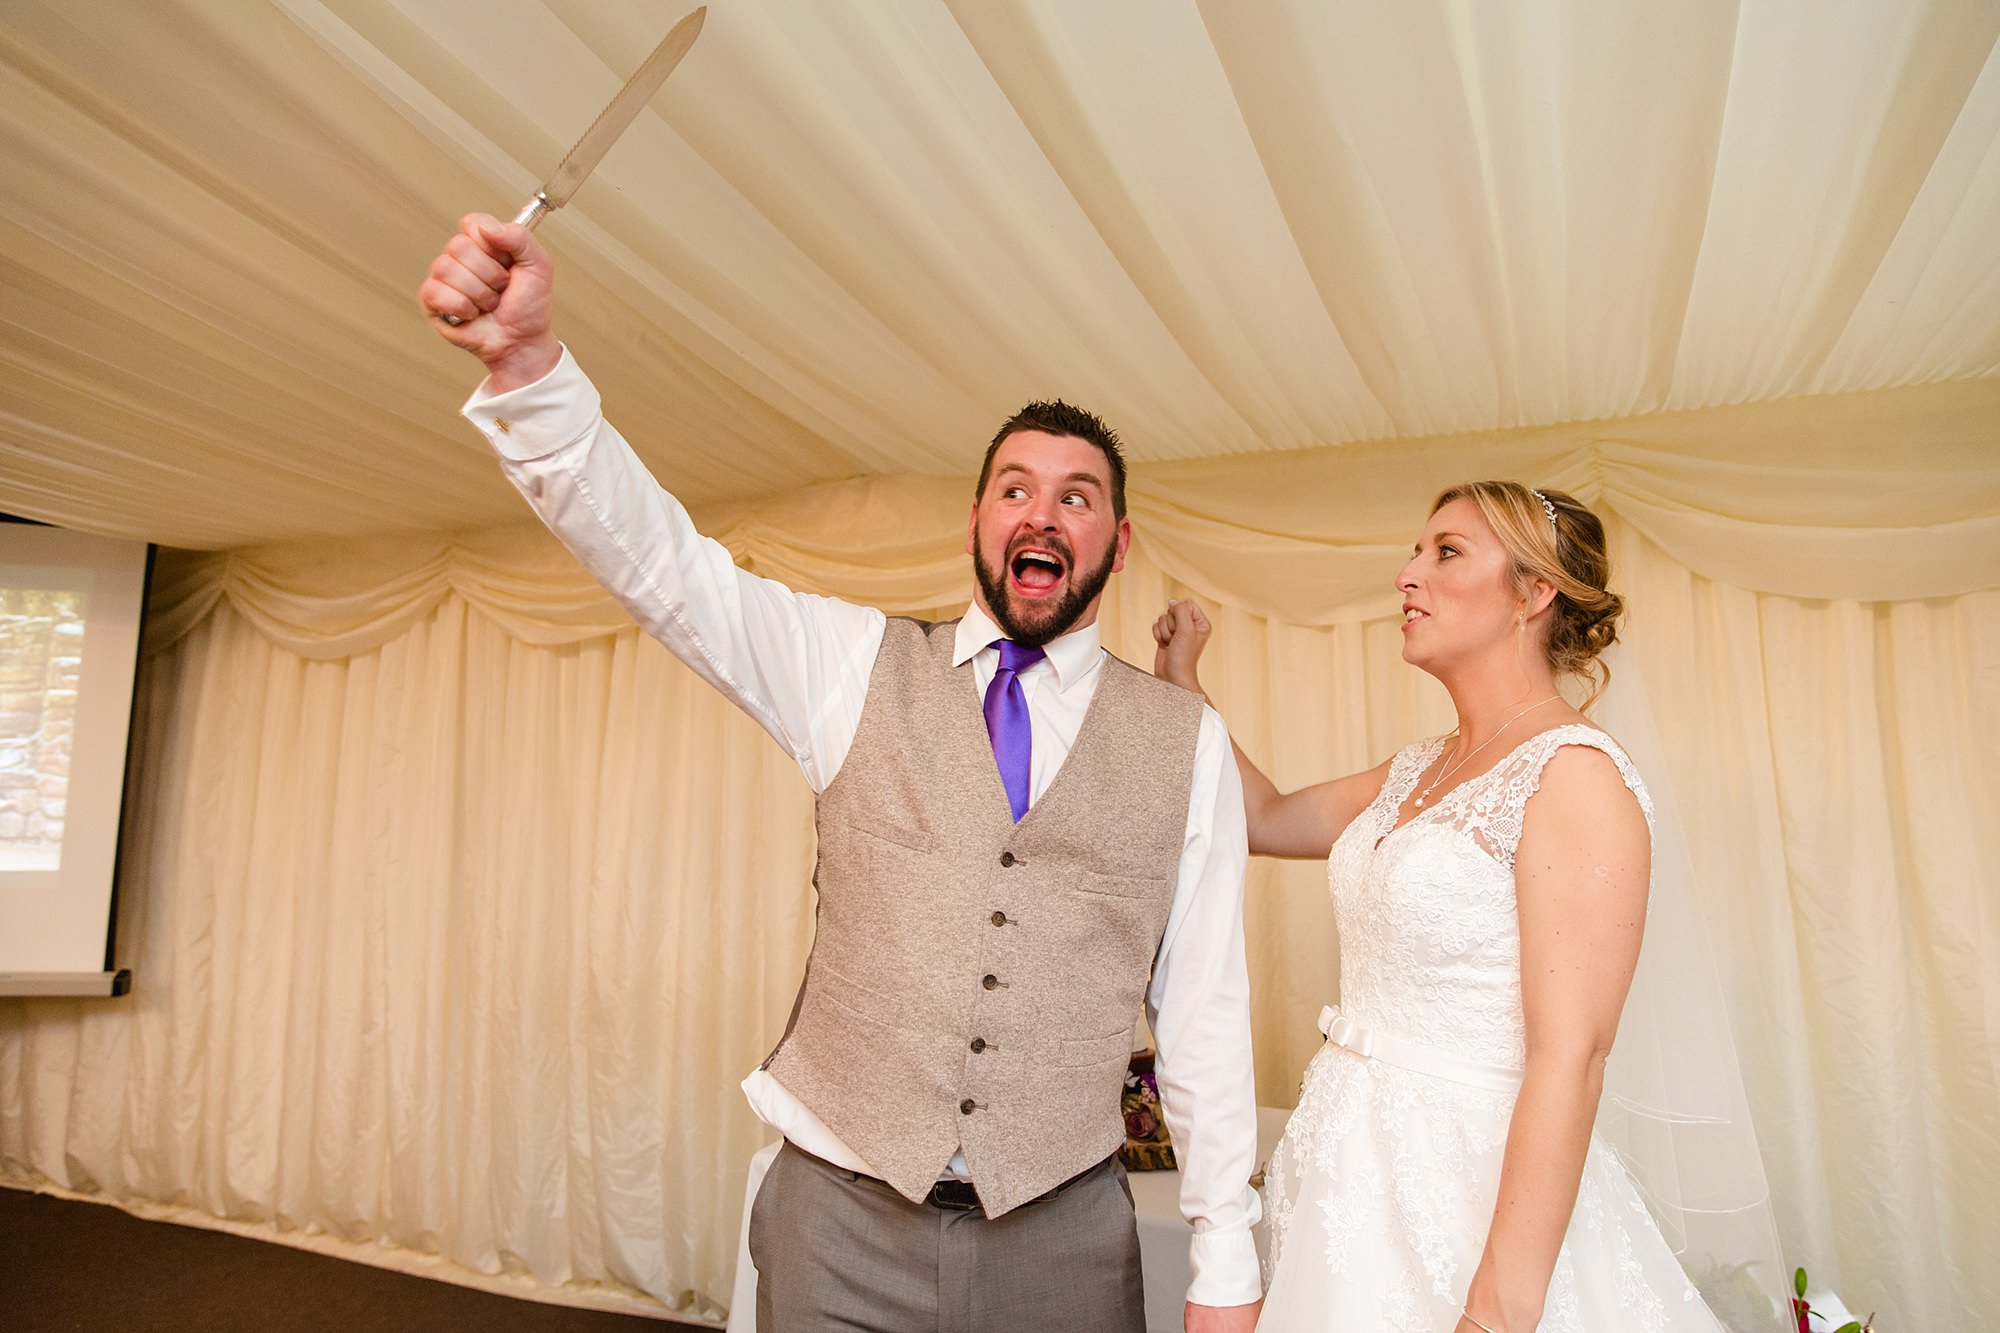 A fun wedding portrait of groom with knife before gutting cake